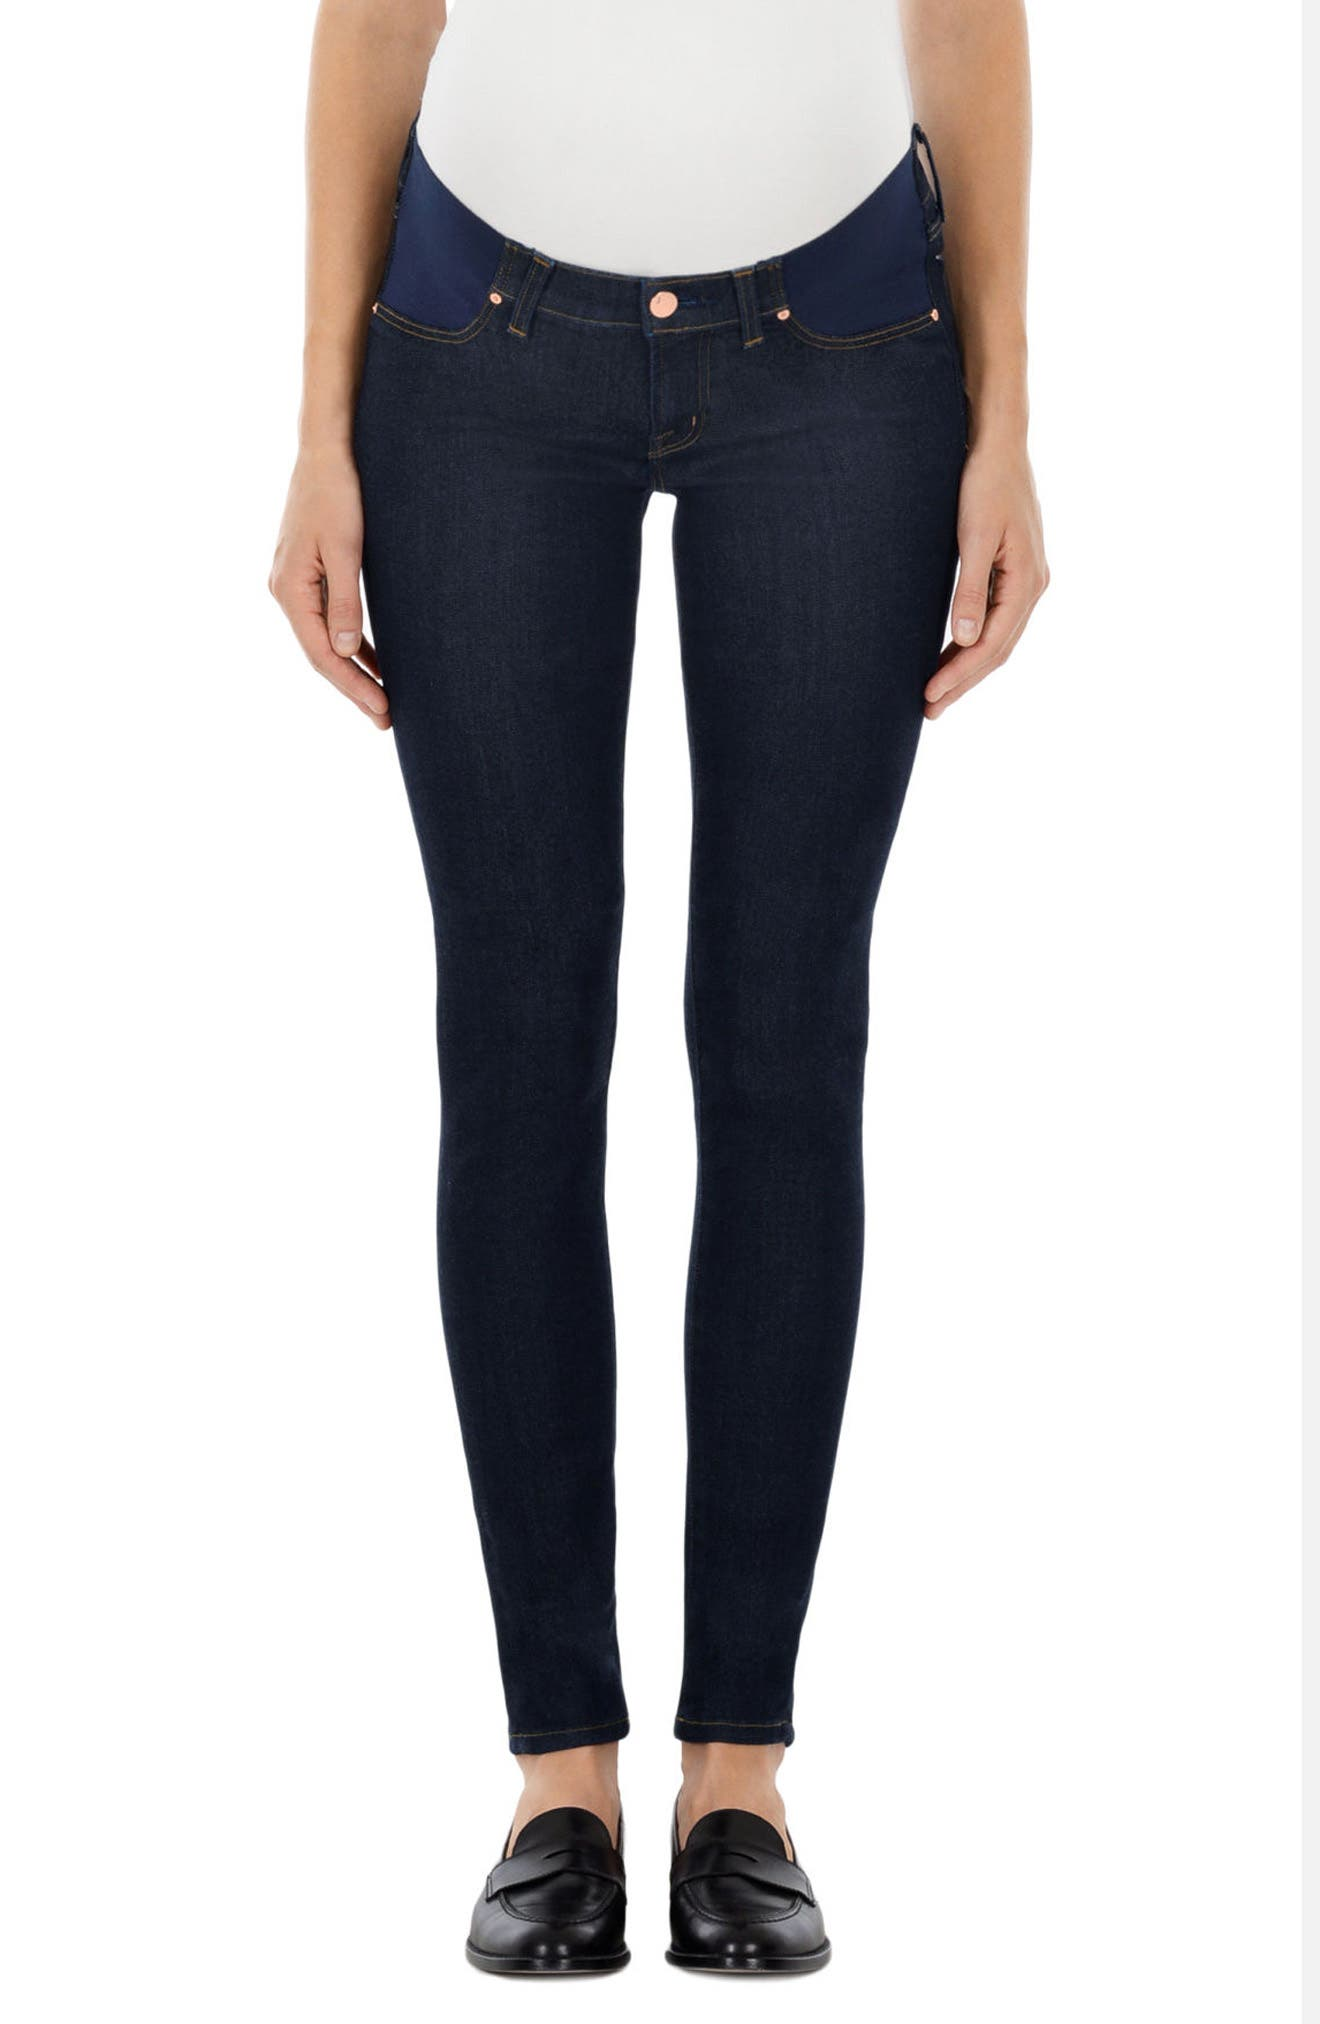 Mama J Super Skinny Maternity Jeans,                         Main,                         color,